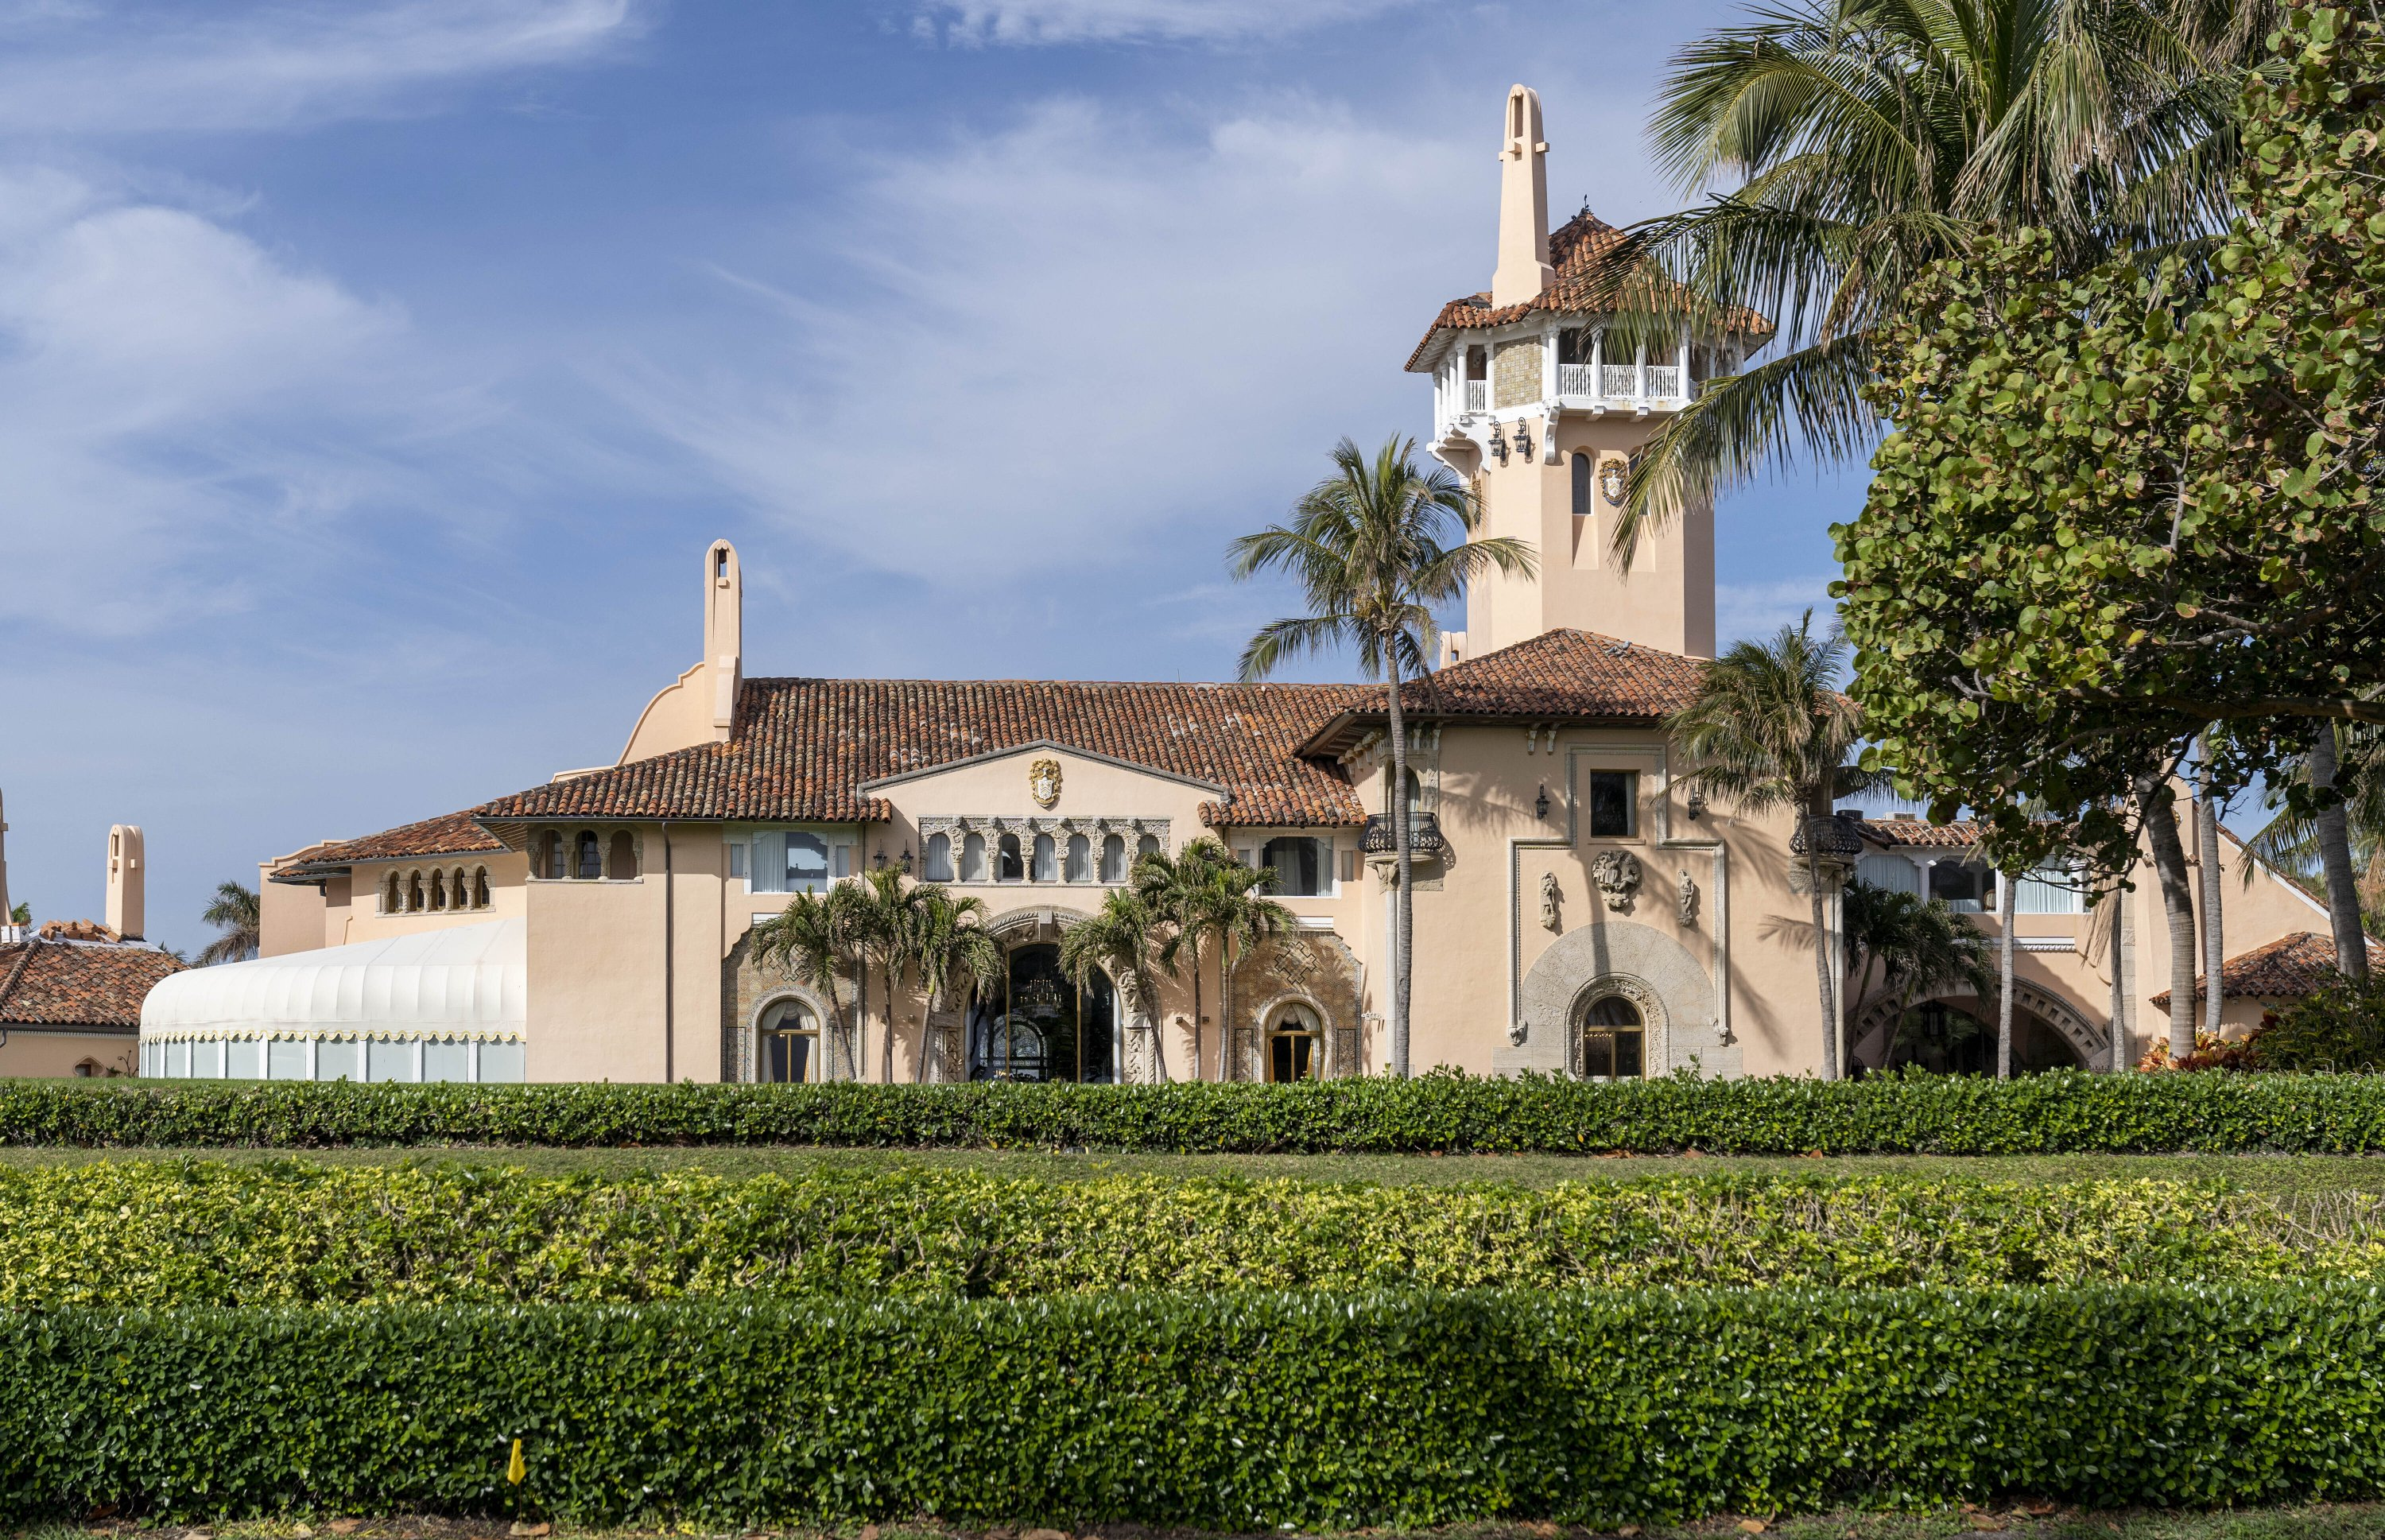 Trump's Mar-a-Lago partially closed due to COVID outbreak thumbnail